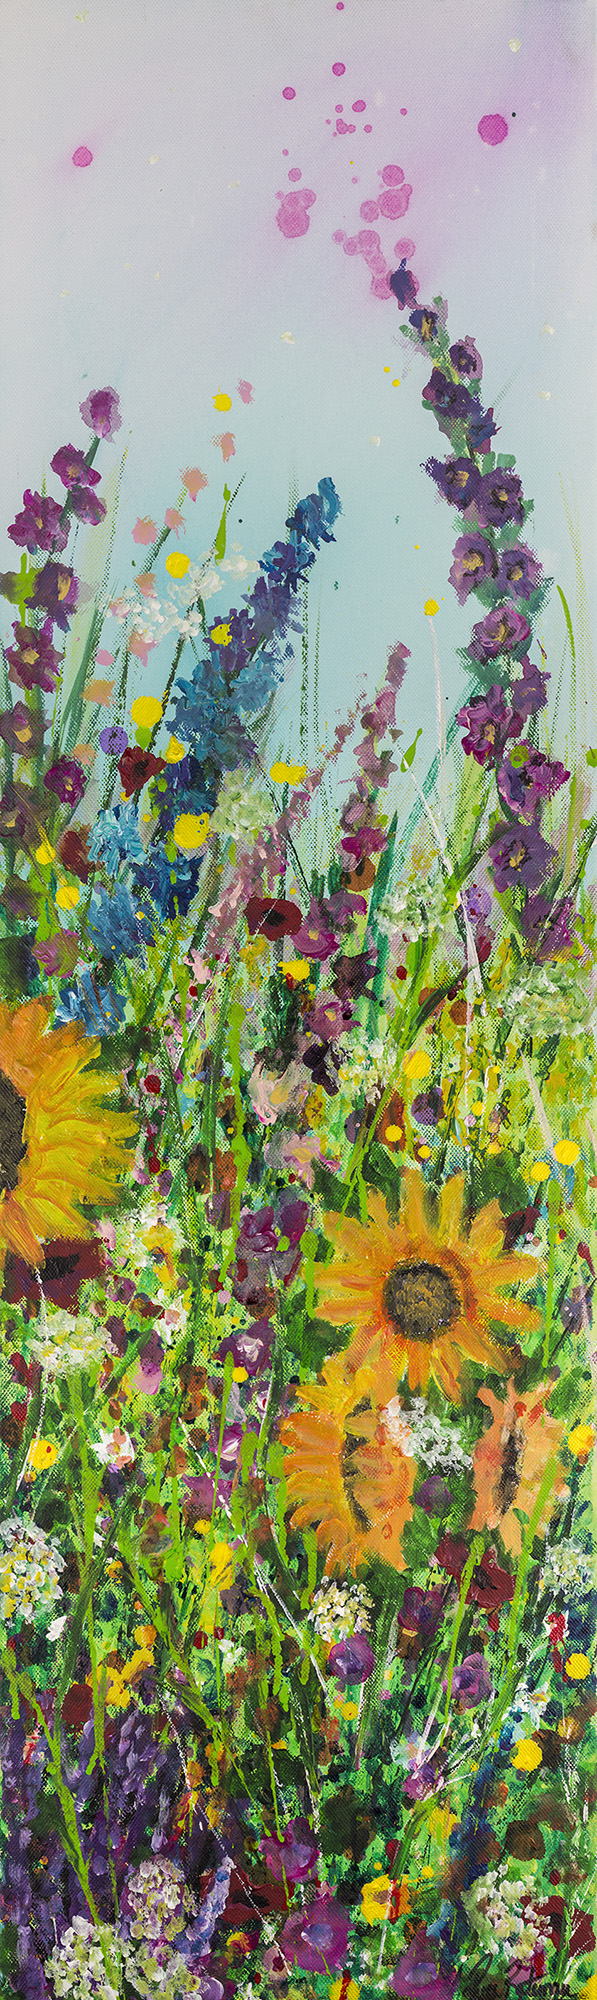 Sunflowers and foxgloves